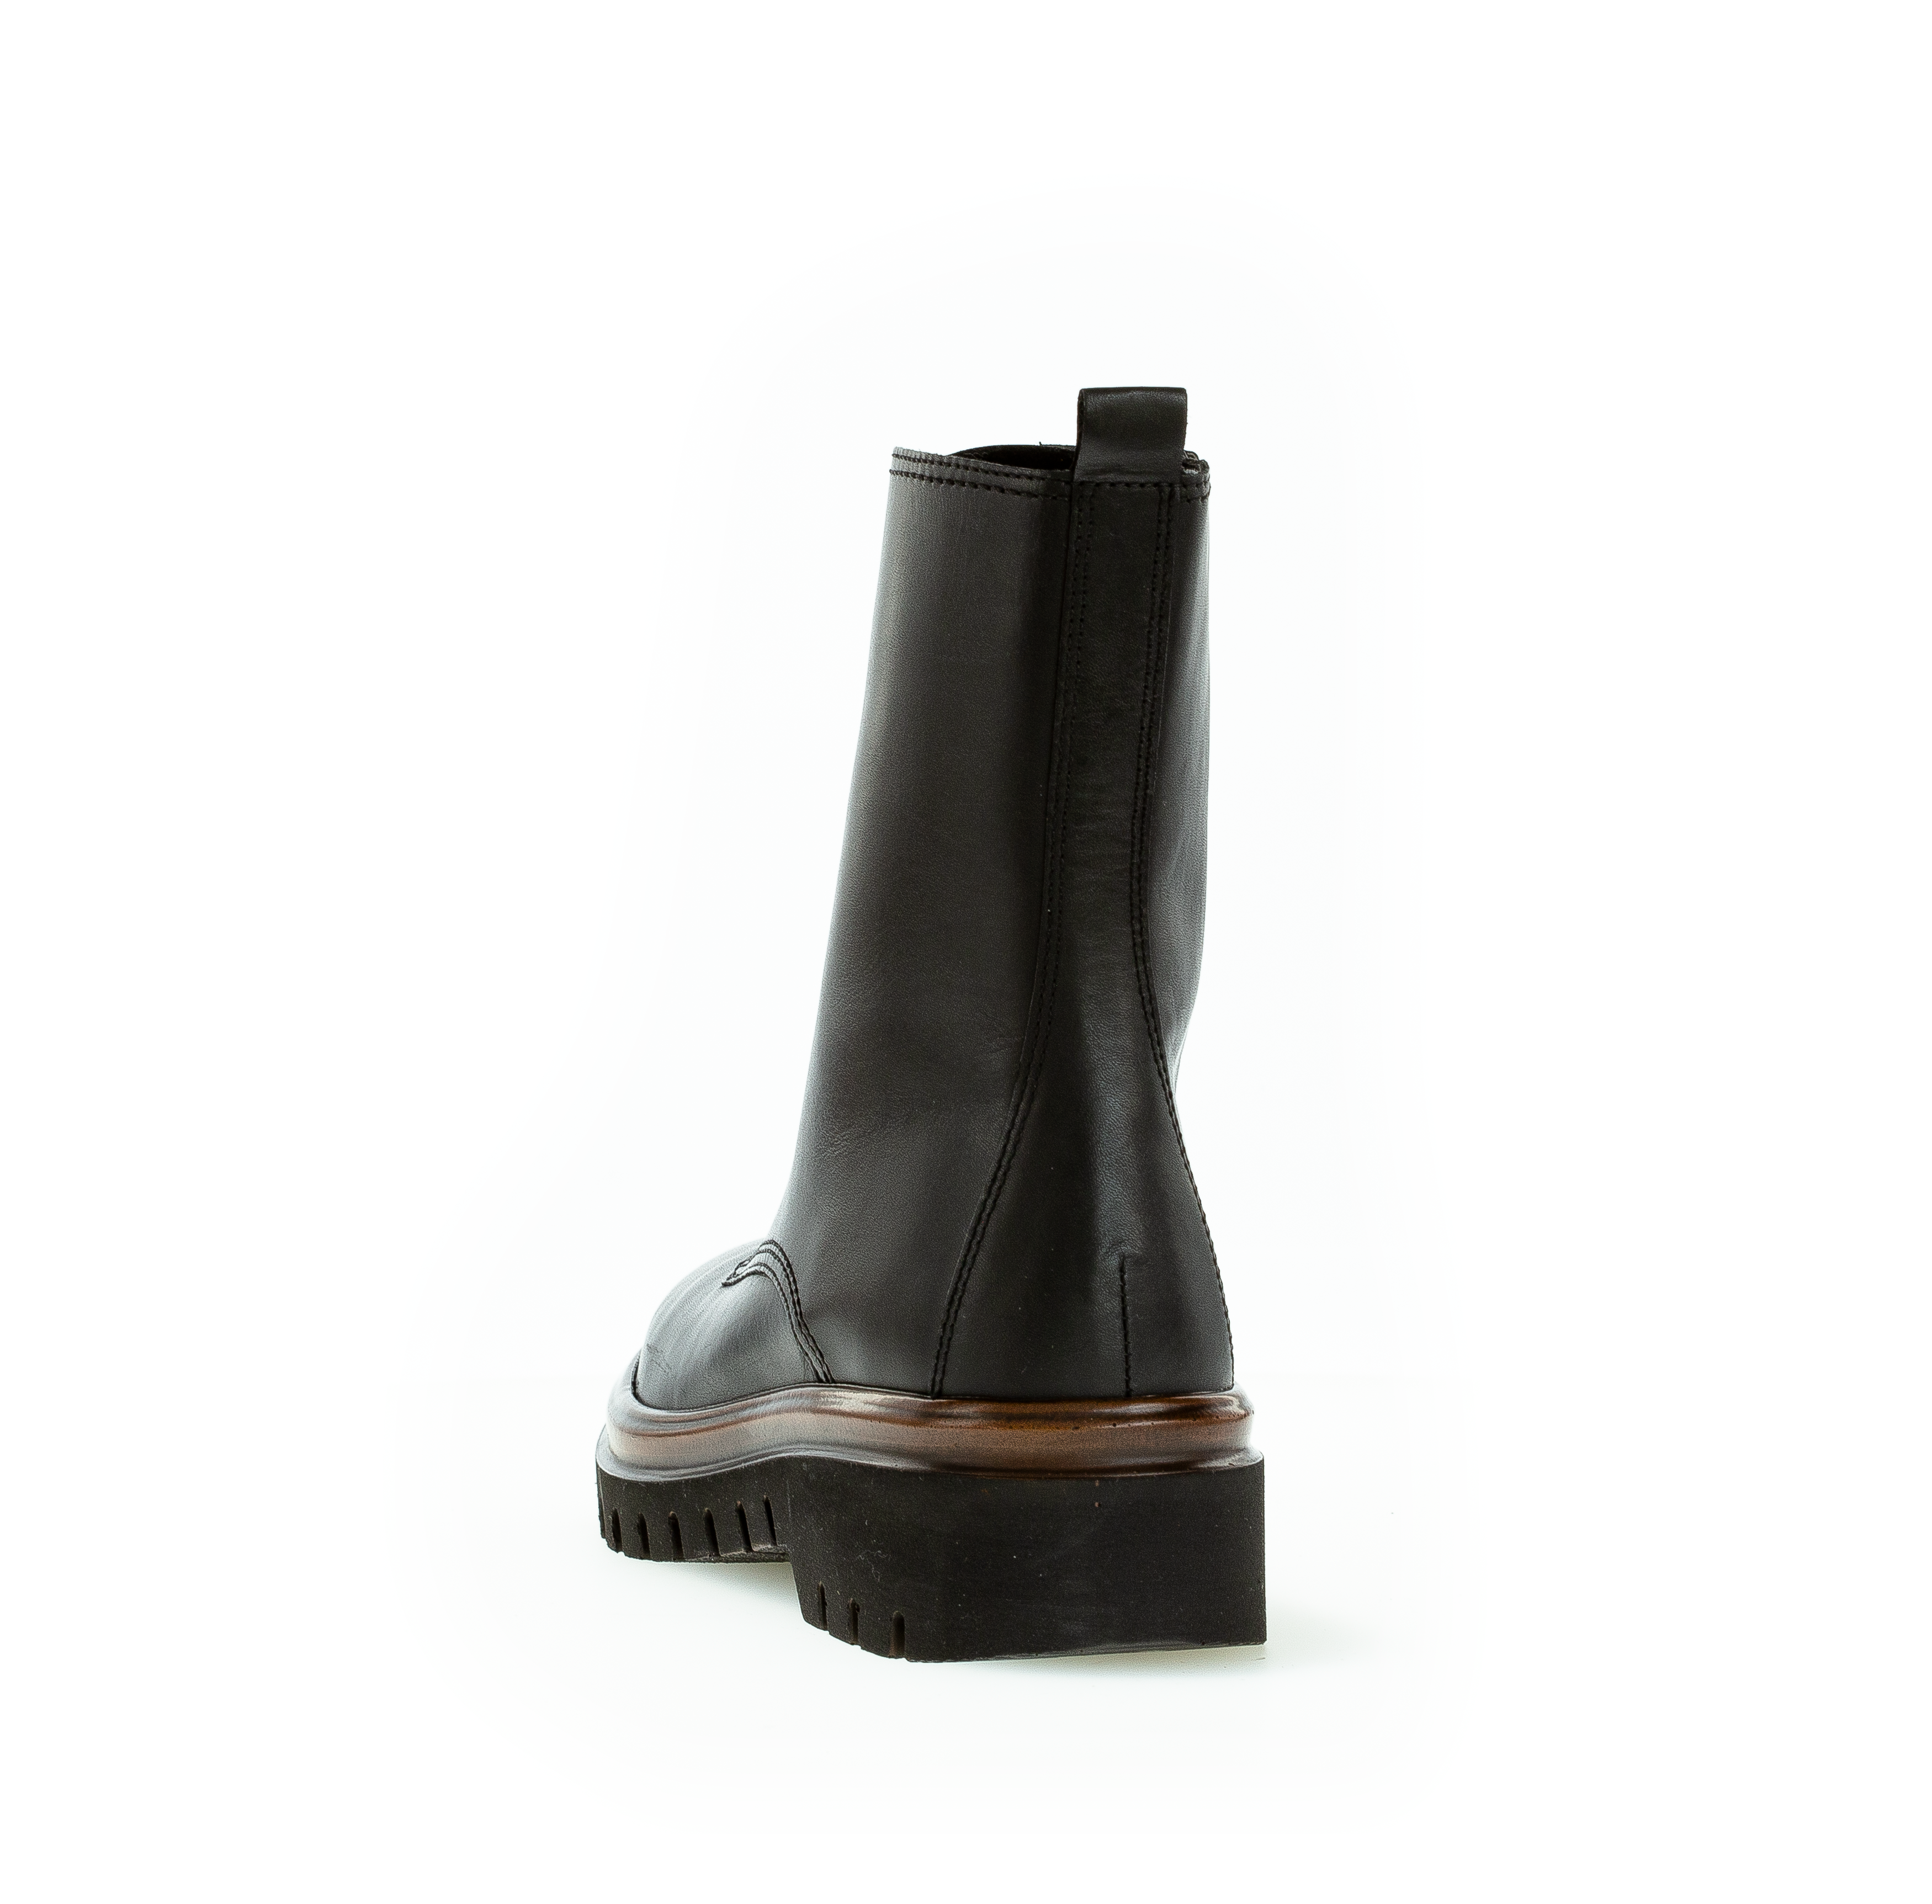 Gabor 71.785.77 Ankle Boots, Sort, 42